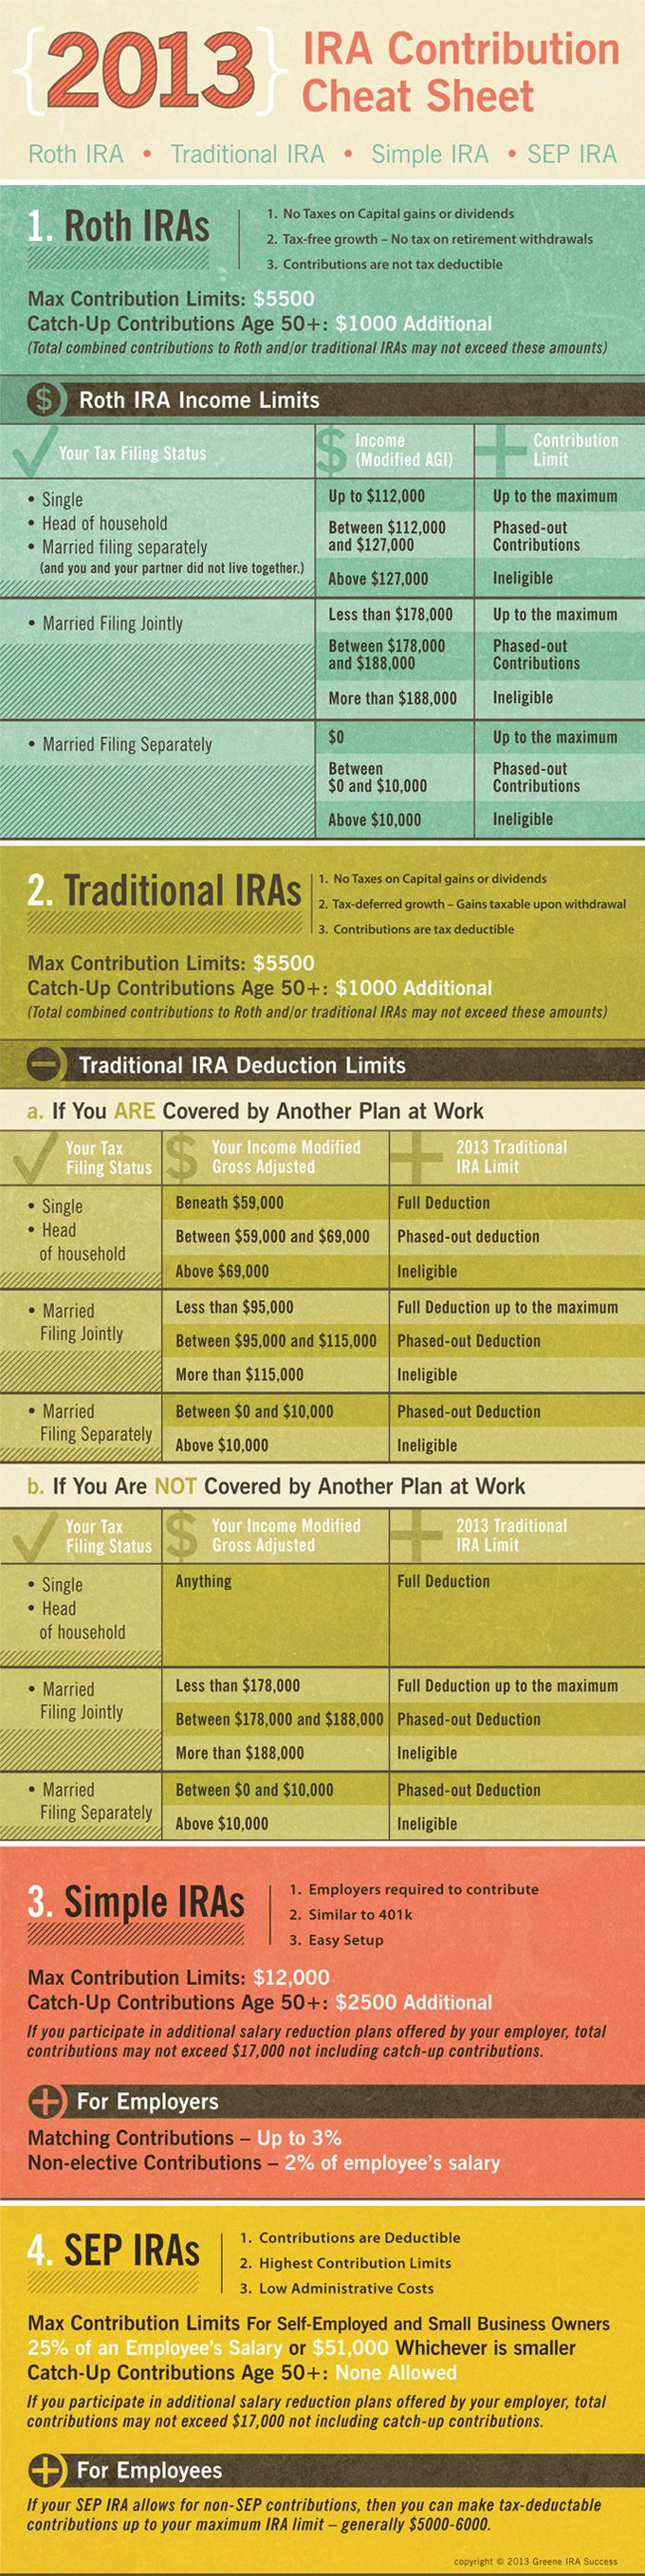 New 2013 IRA Contribution Cheat Sheet